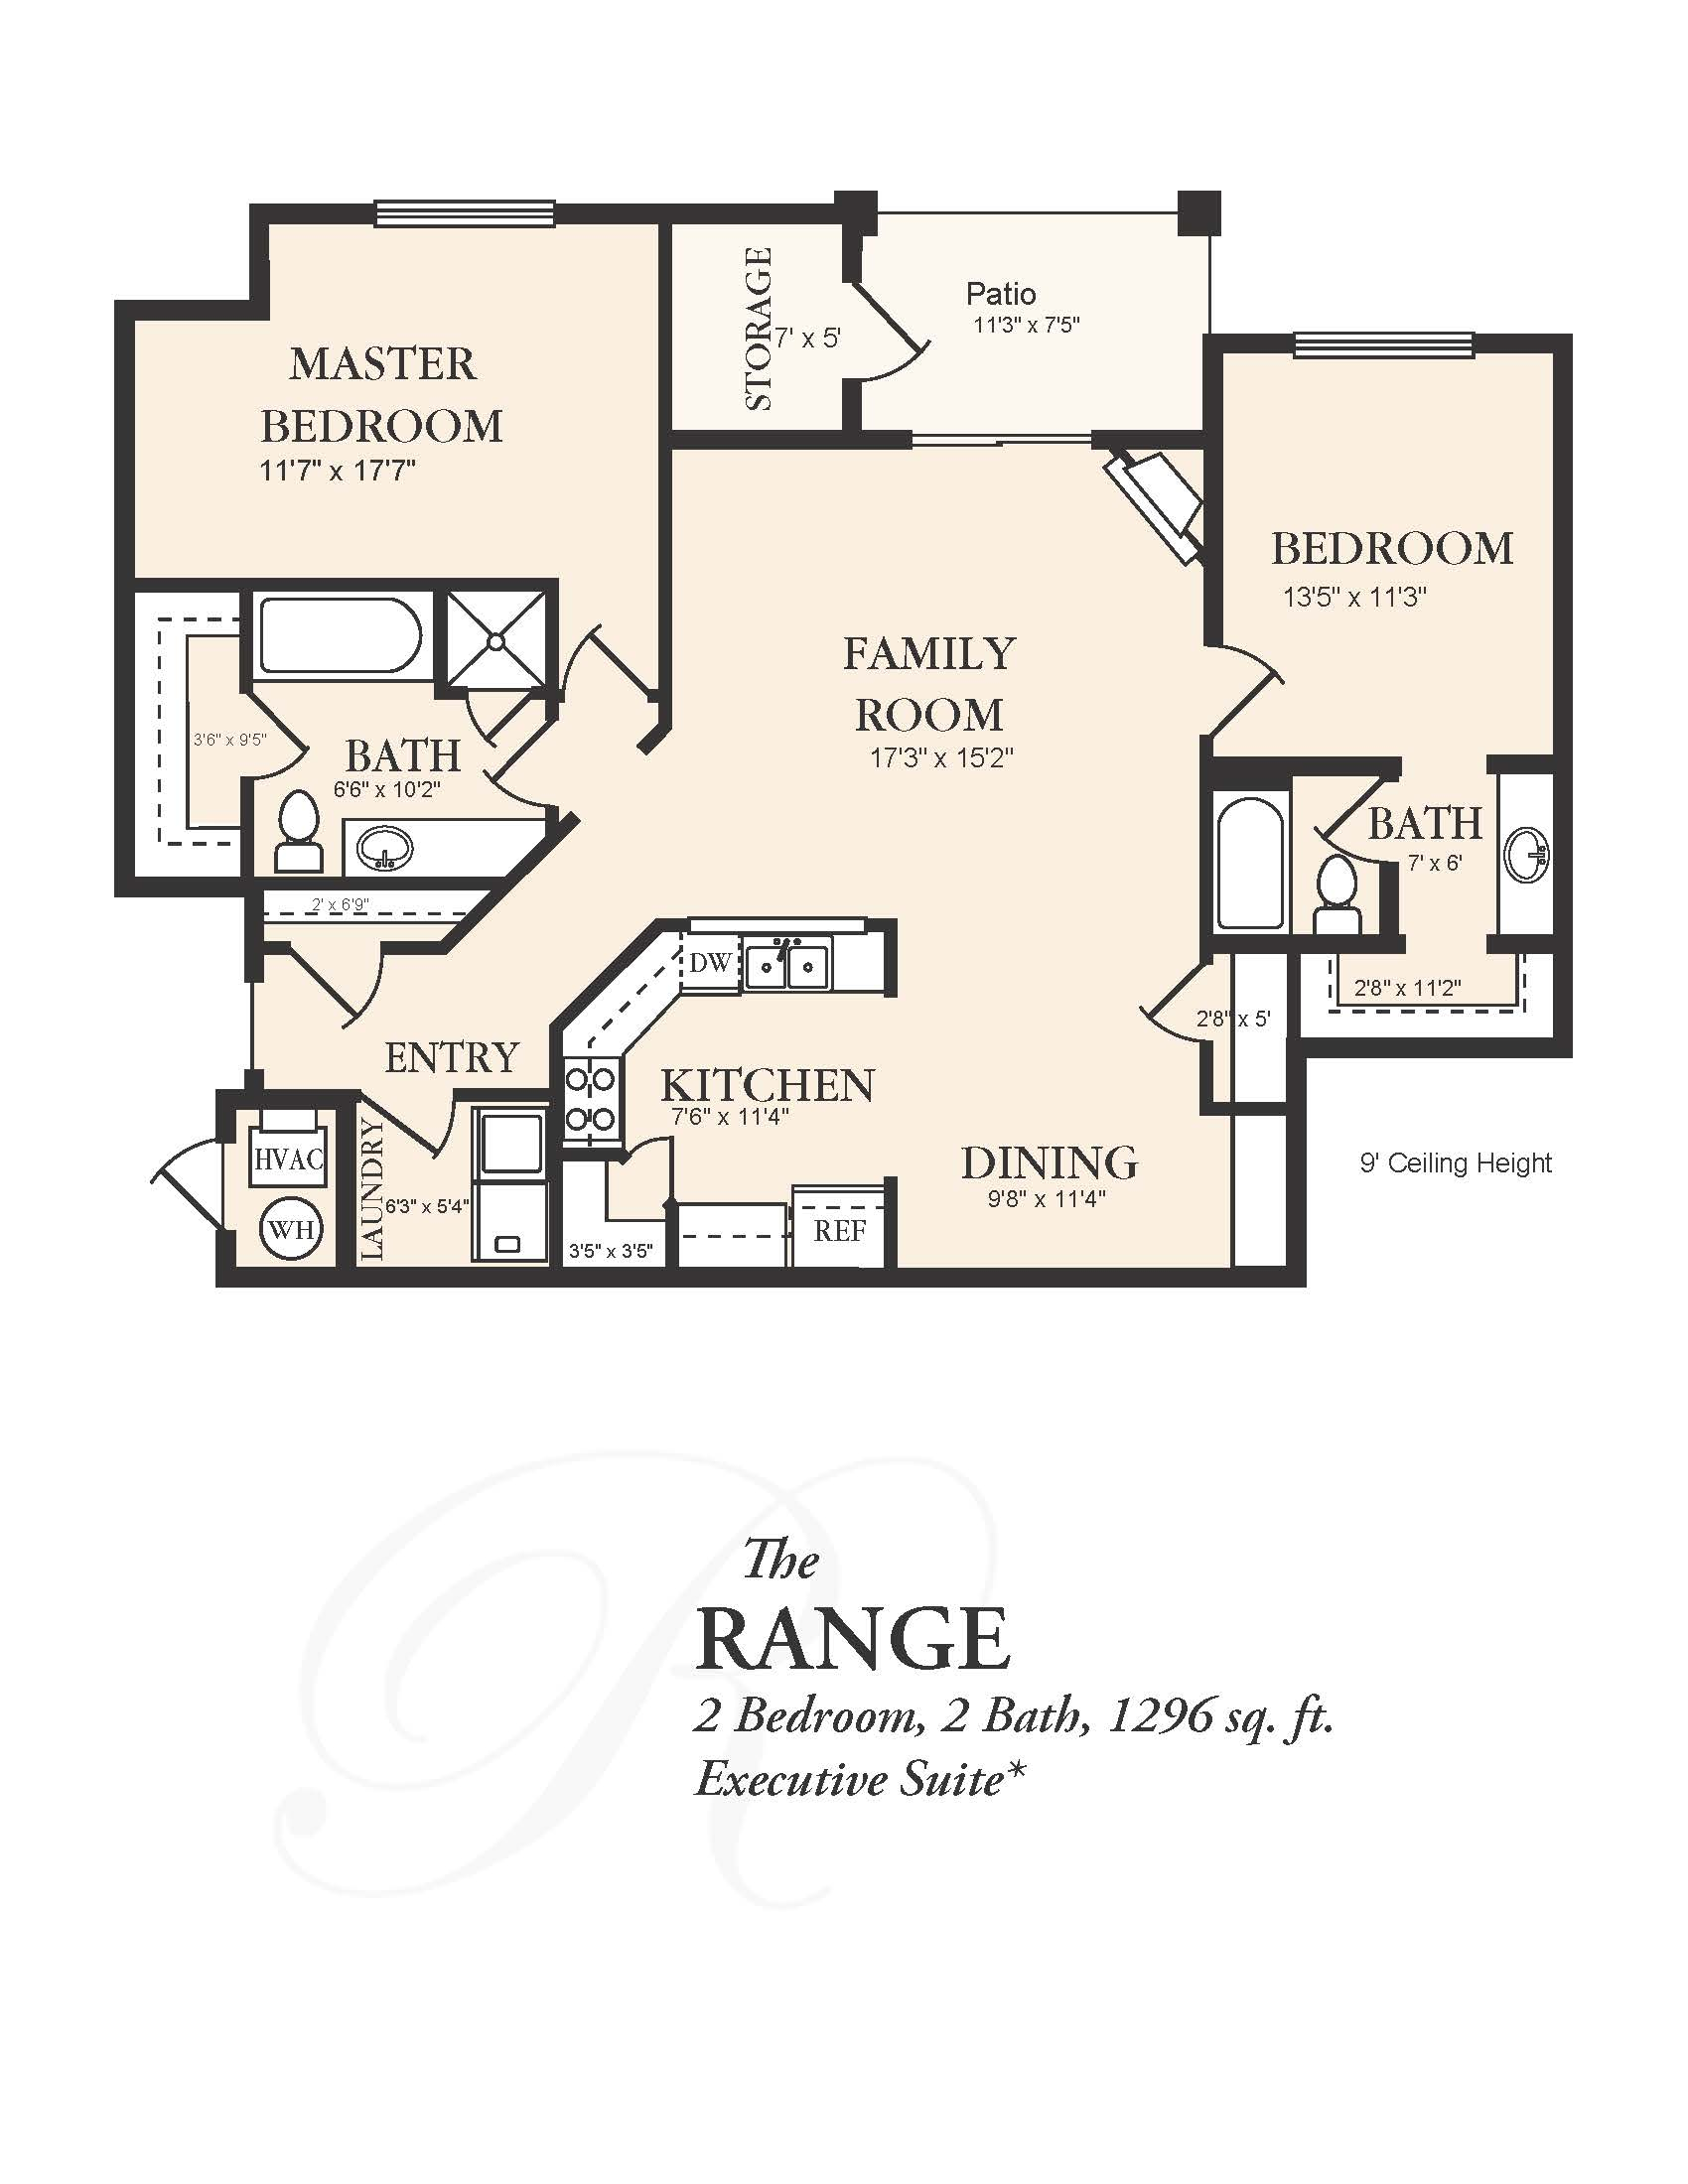 View floor plan image of 2Bedroom 2 Bath apartment available now